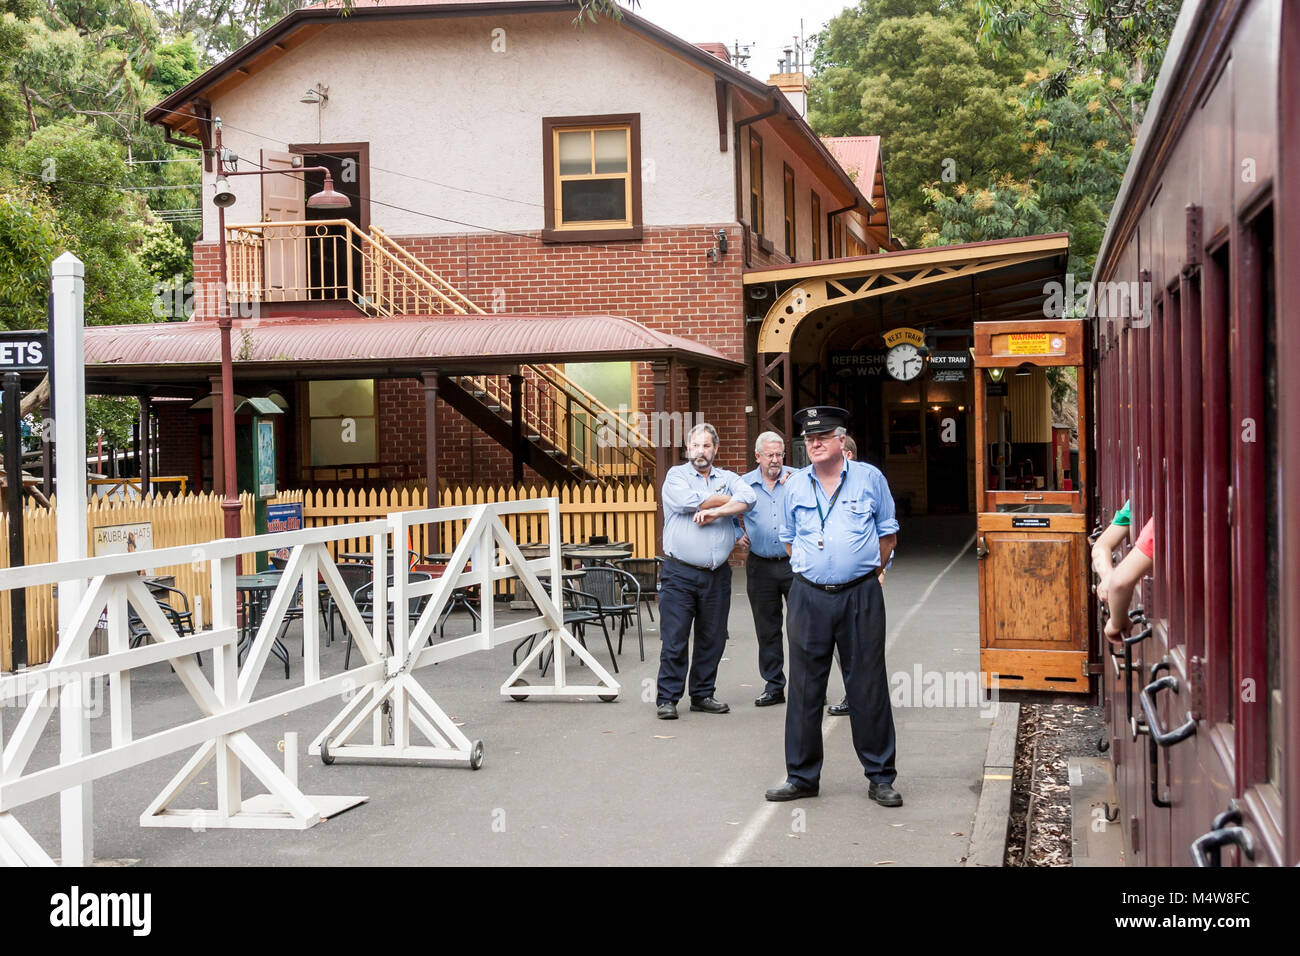 Puffing Billy is historical narrow railway in the Dandenong Ranges near Melbourne. Station master is waiting to - Stock Image